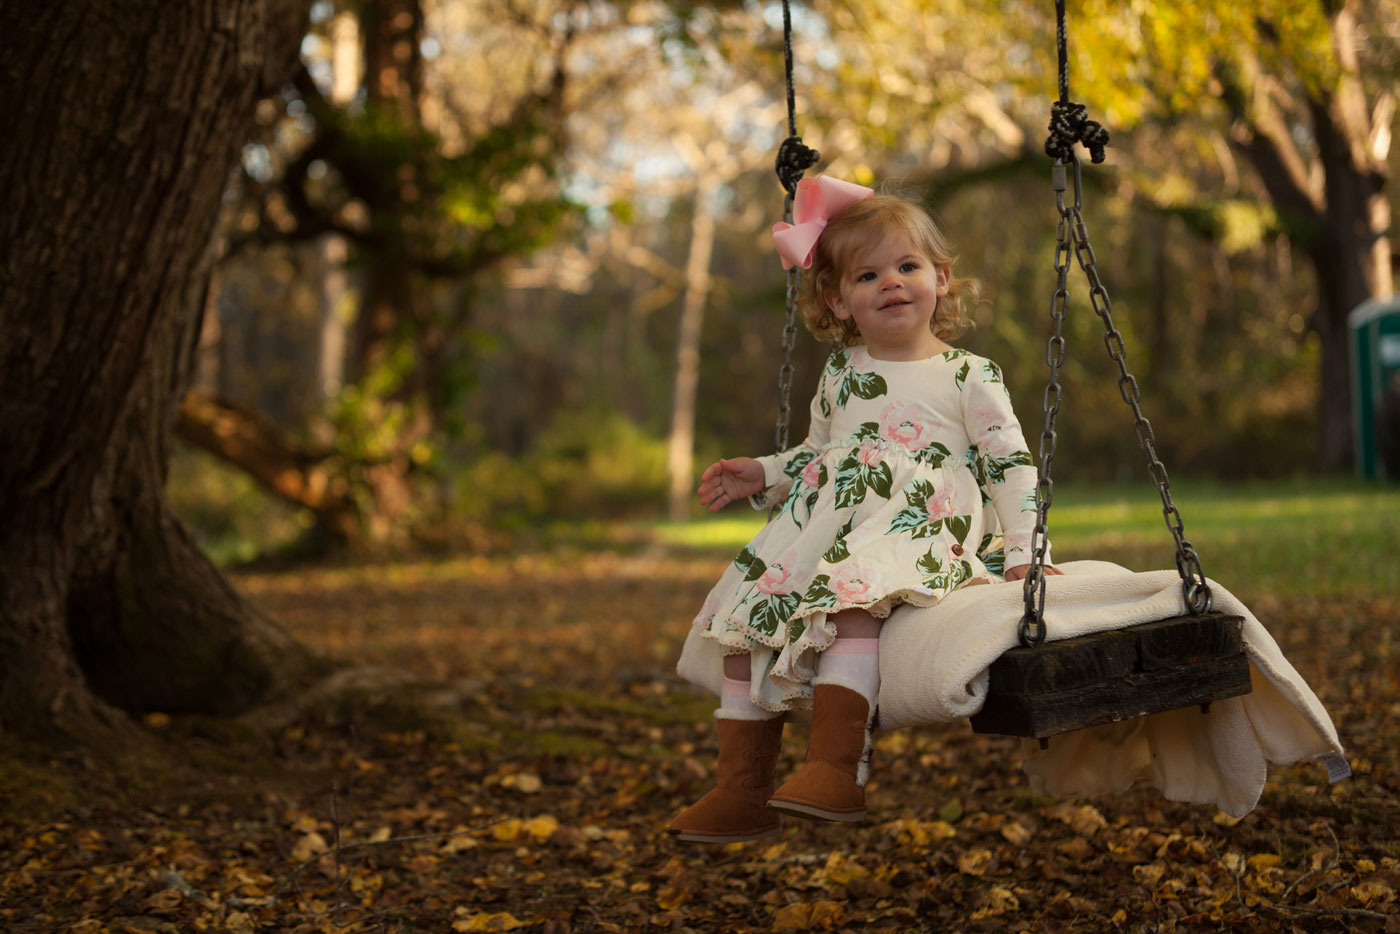 Unedited Photo of Girl In Swing